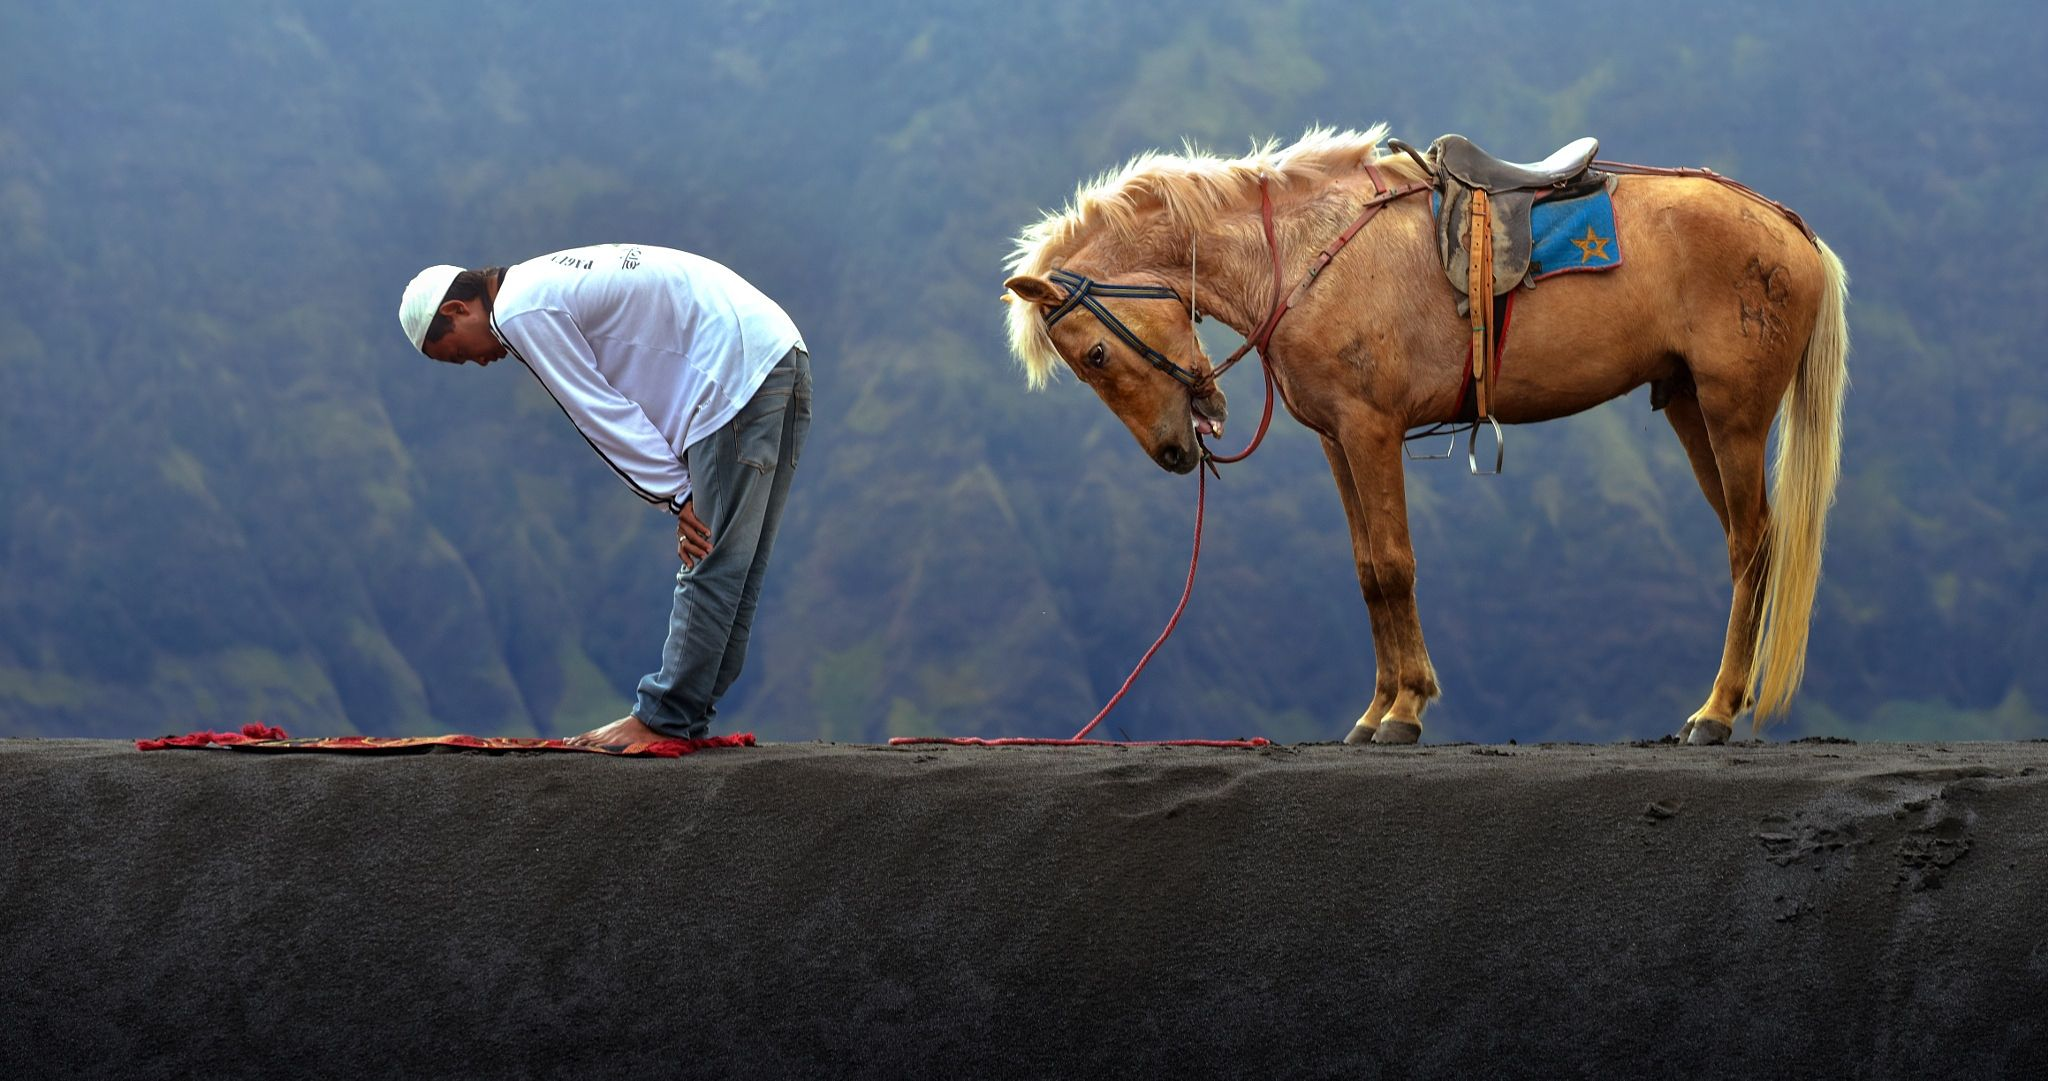 Photograph Obedience by Fahmi Bhs on 500px